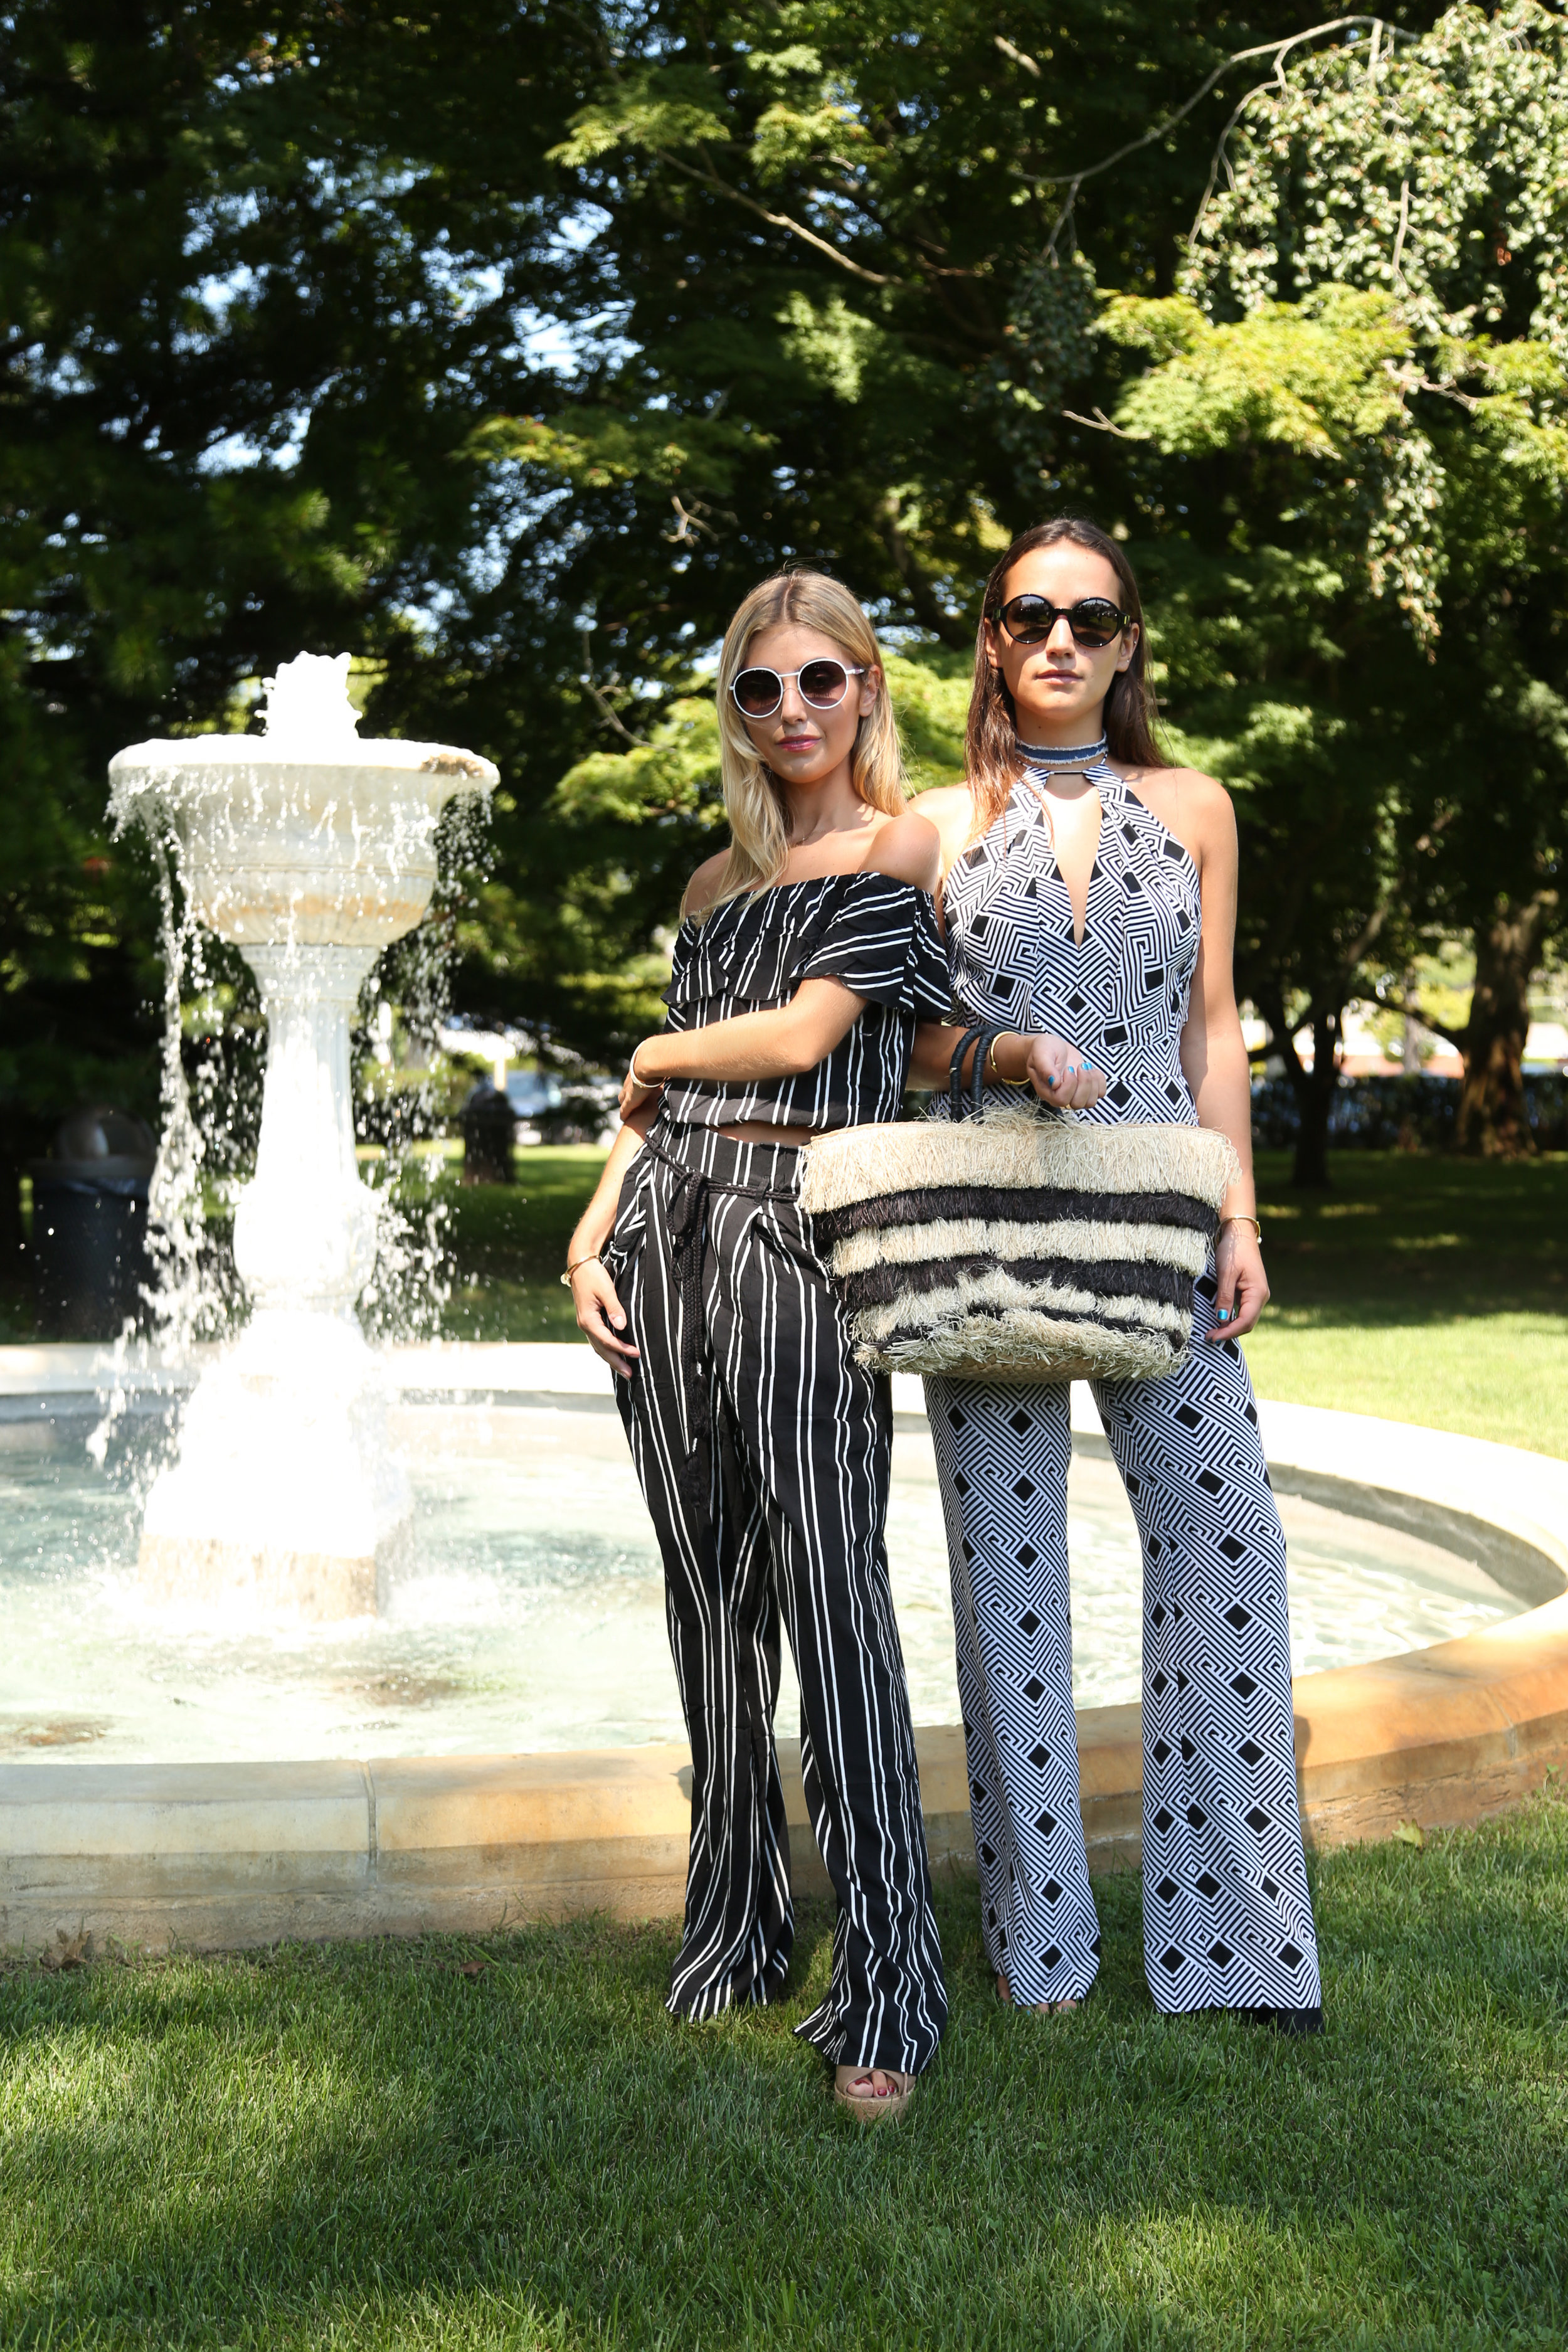 SOPHIE AND CHARLOTTE BICKLEY SISTER BLOGGERS YIN 2MY YANG HAMPTONS NYC STRAW BAG POSTSOPHIE AND CHARLOTTE BICKLEY SISTER BLOGGERS YIN 2MY YANG HAMPTONS NYC STRAW BAG POST